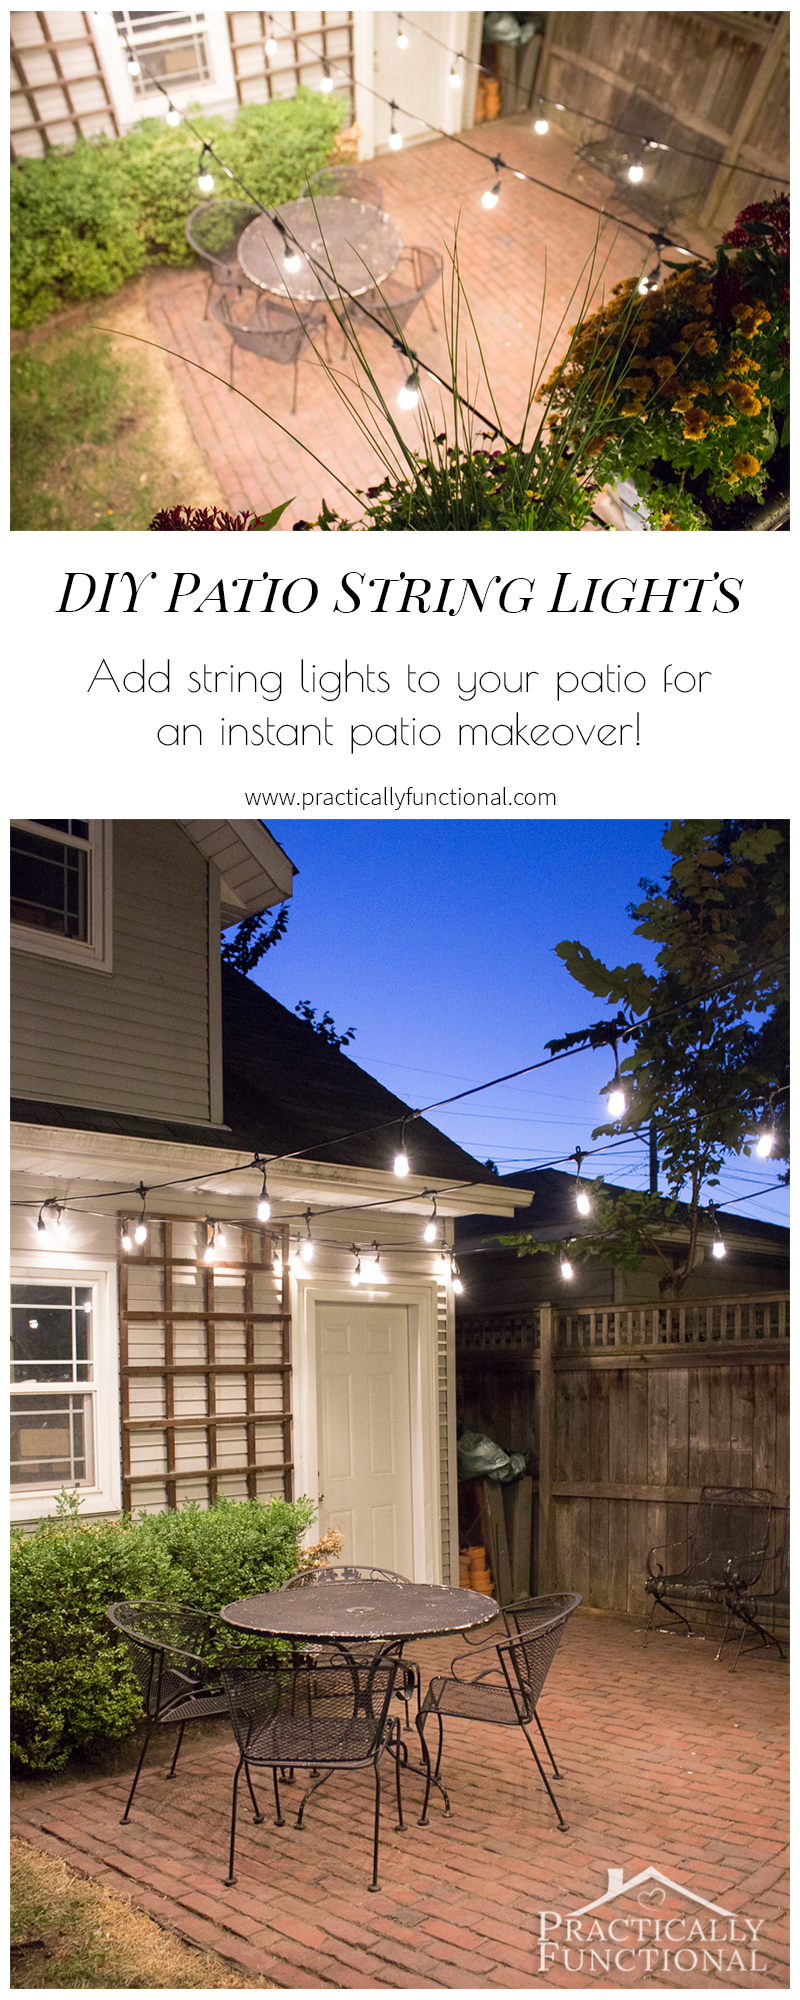 Add string lights to your patio for a quick makeover!